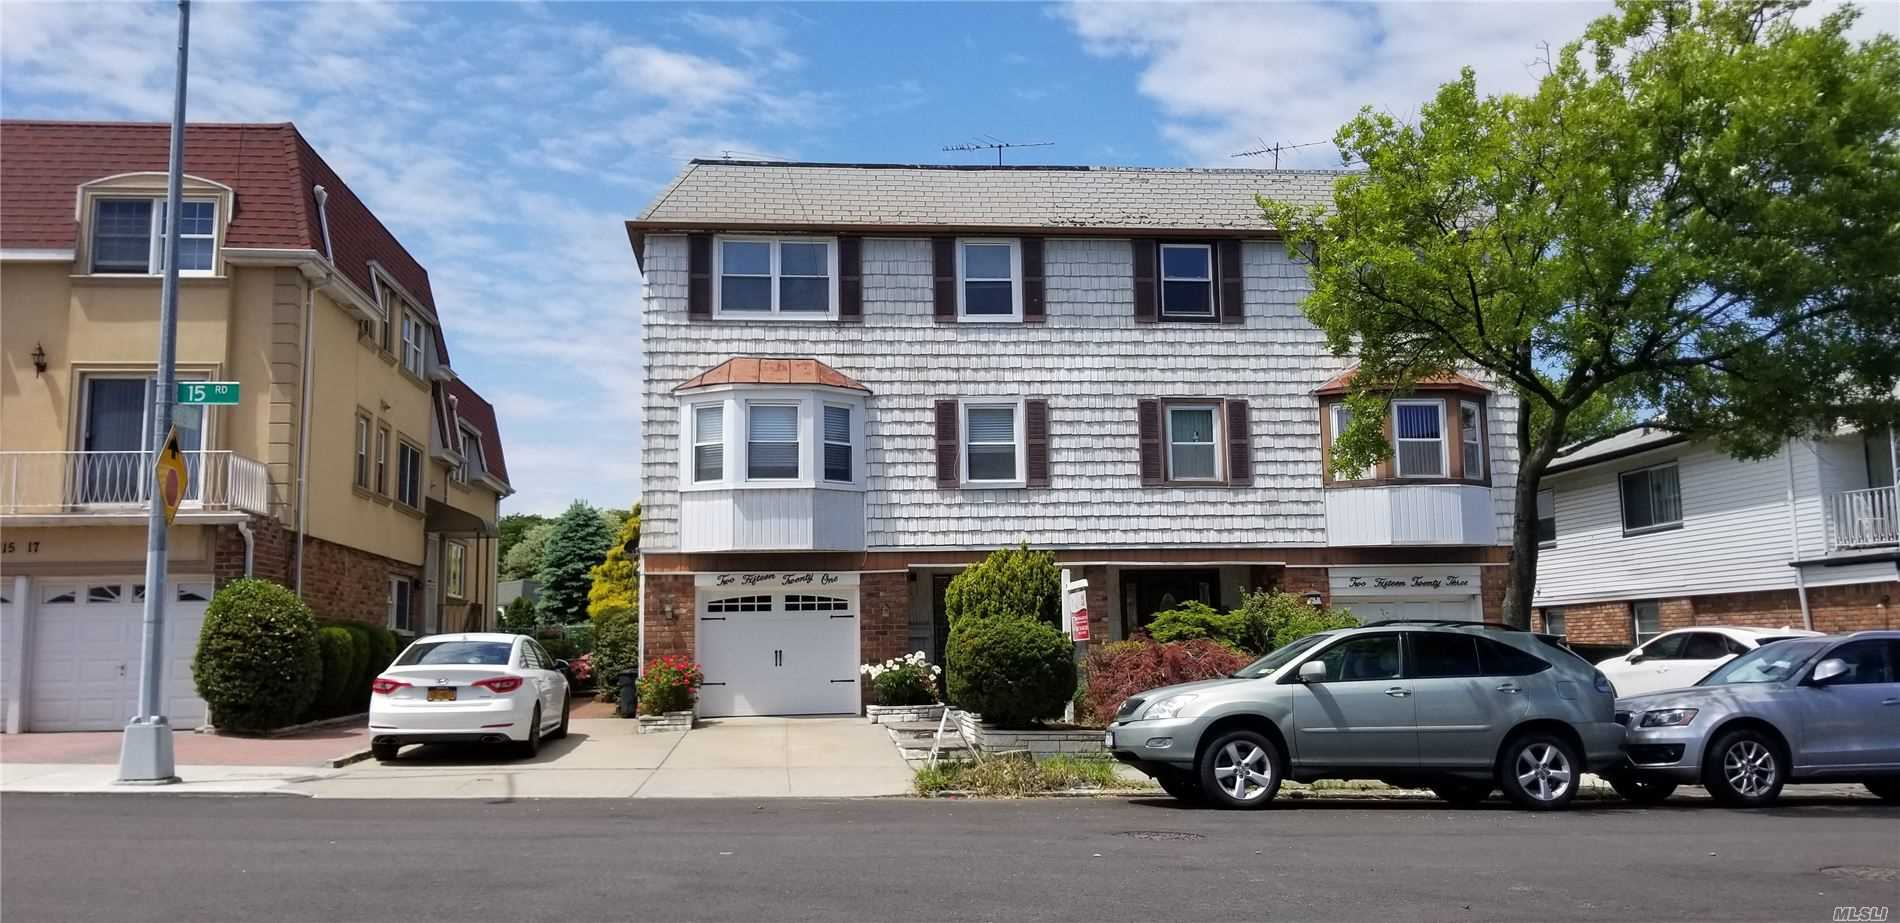 Property for sale at 215-21 15th Rd, Bayside NY 11360, Bayside,  New York 11360